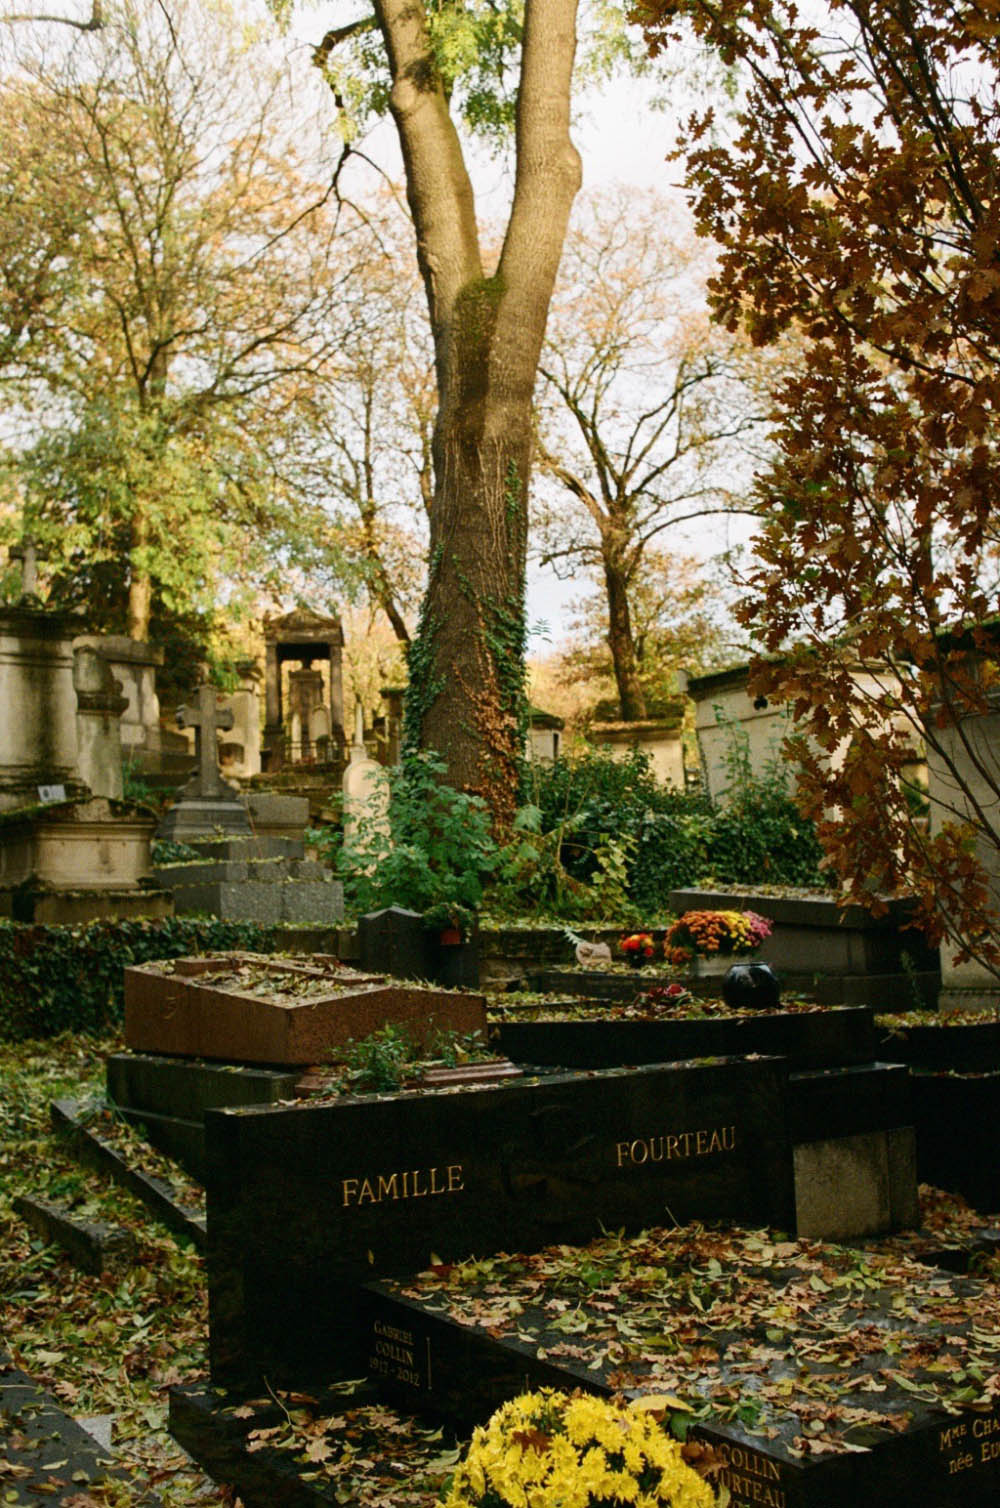 Père Lachaise Cemetery the day after the election, Paris, November 2016